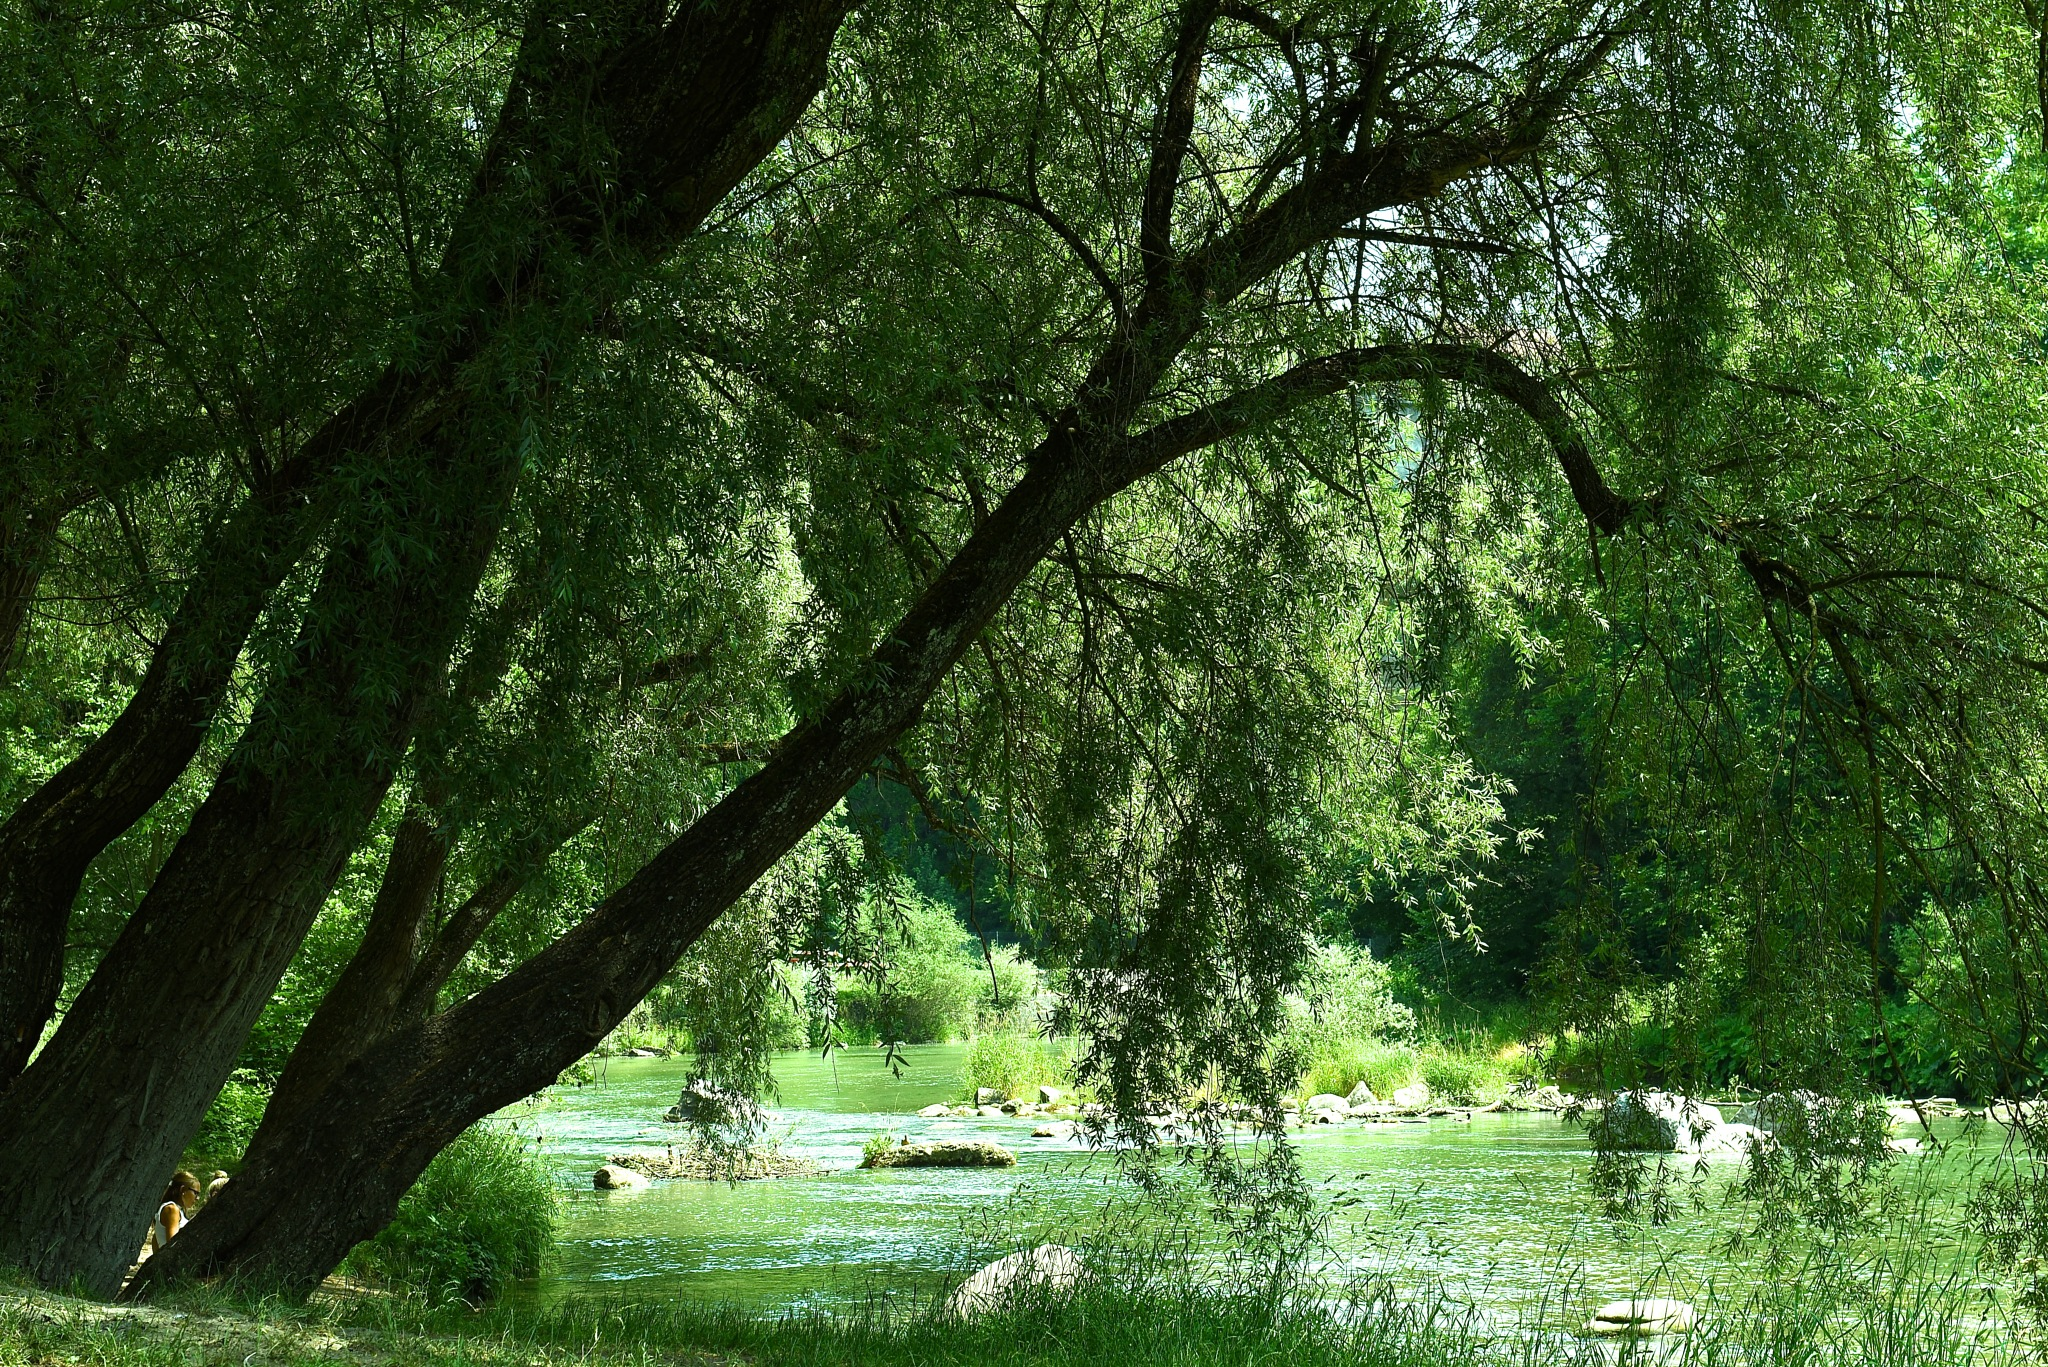 near the river, in between trees there is someone, look by Liliane Sticher